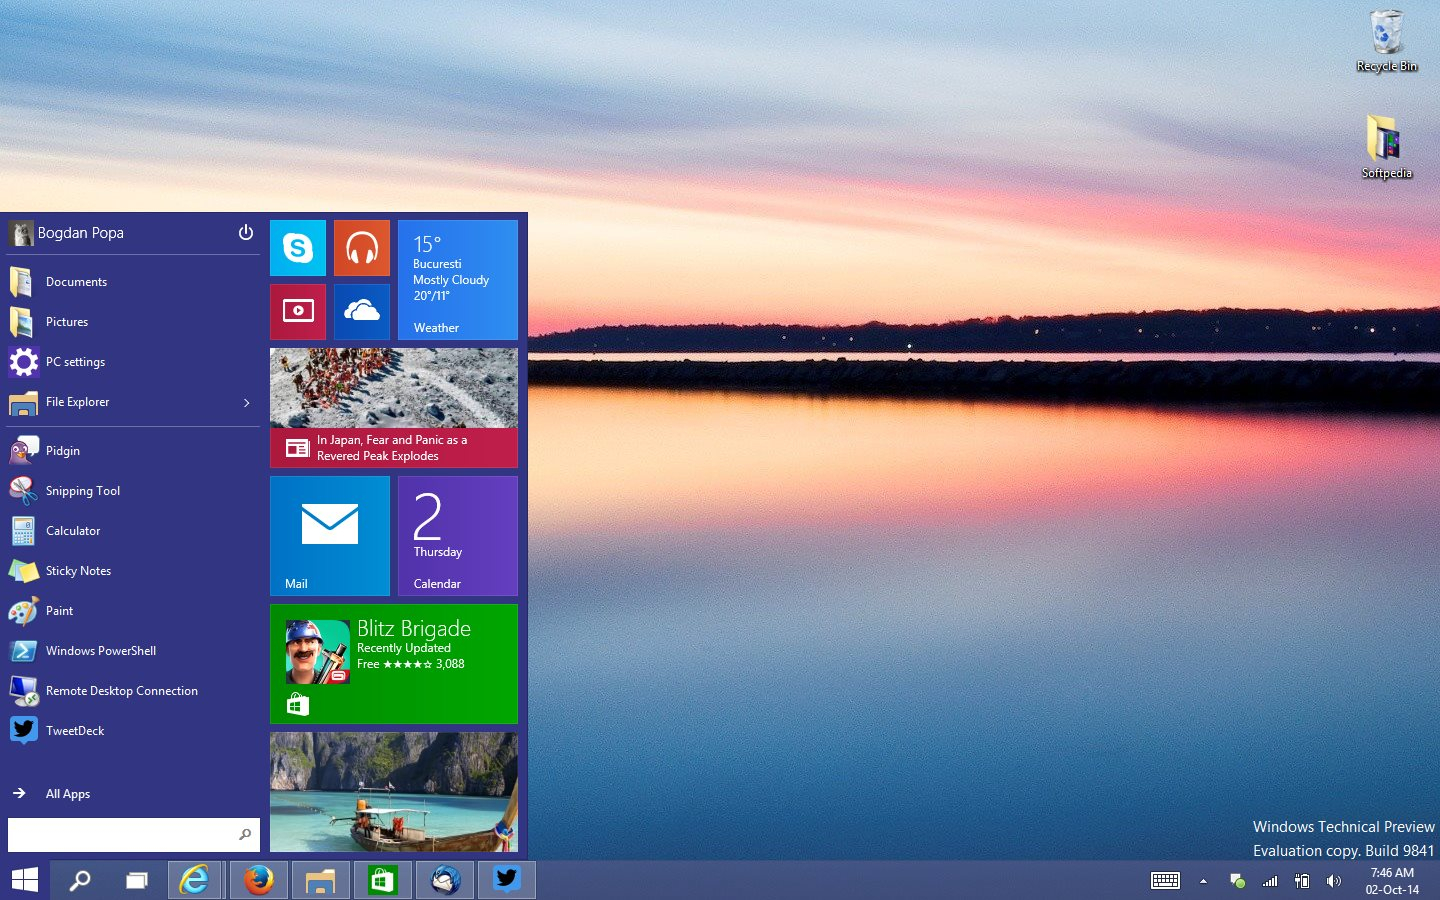 New Windows 10 Build Expected This Week